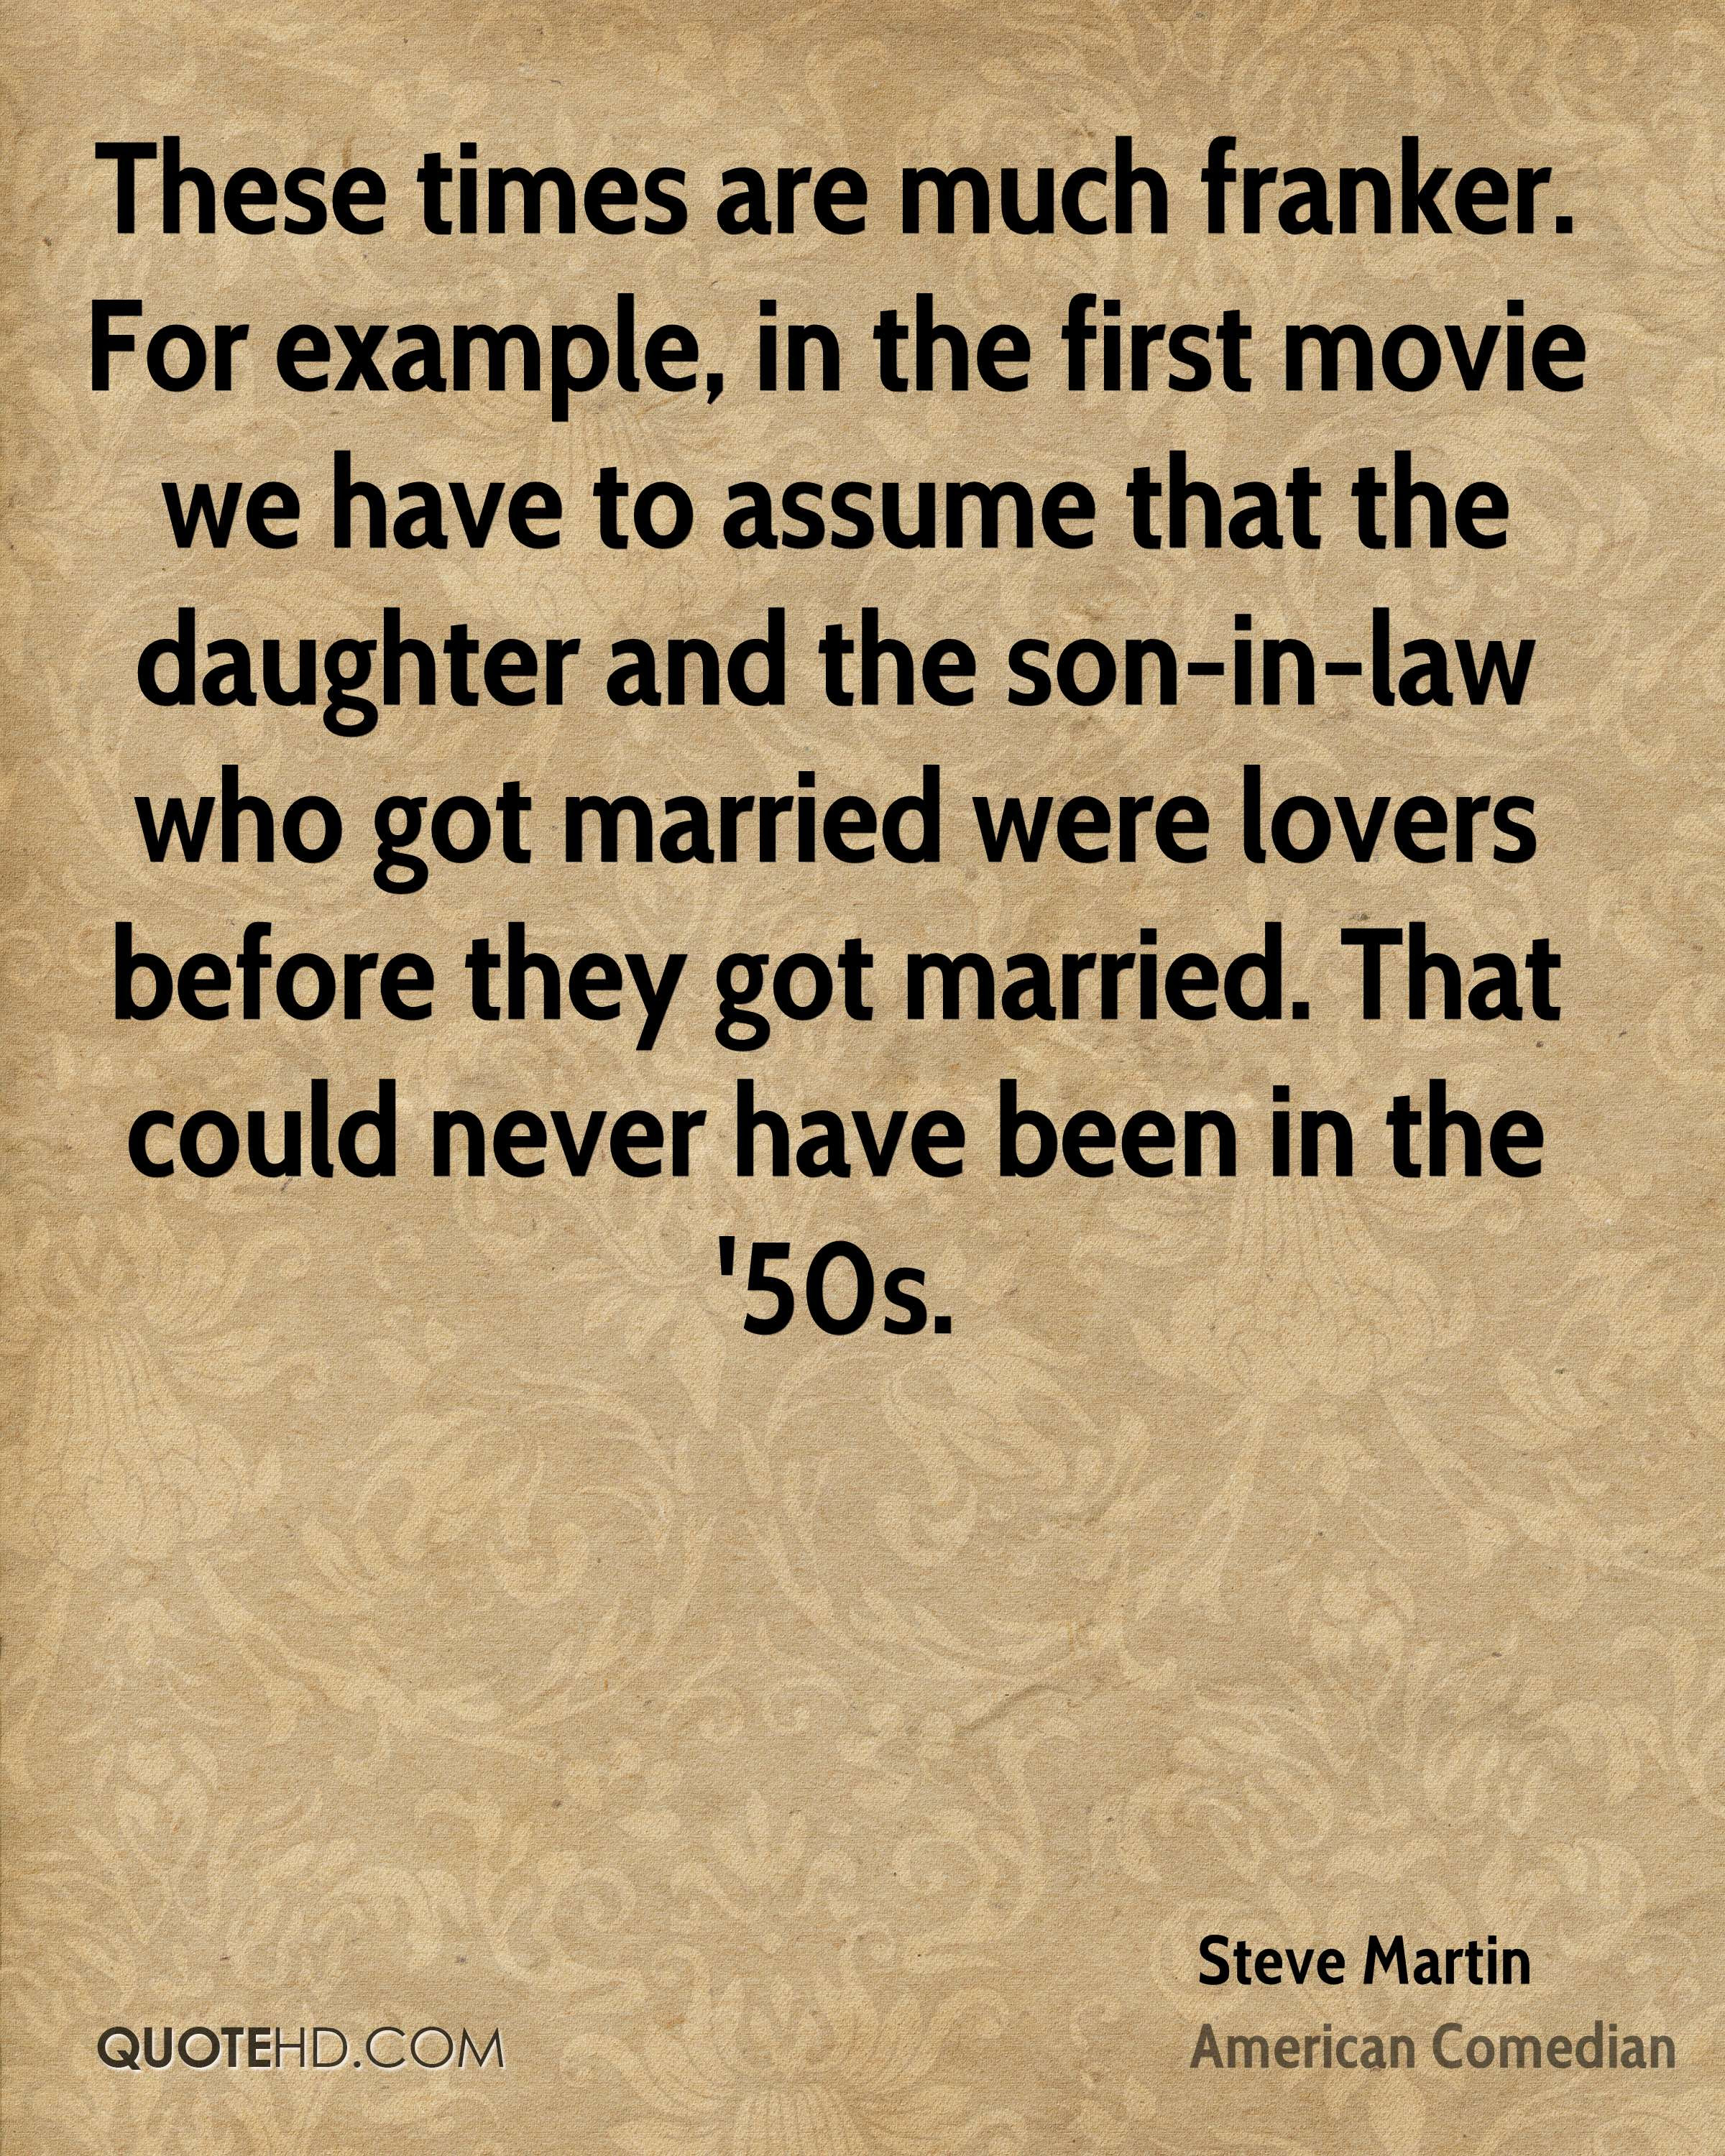 Steve Martin Marriage Quotes Quotehd